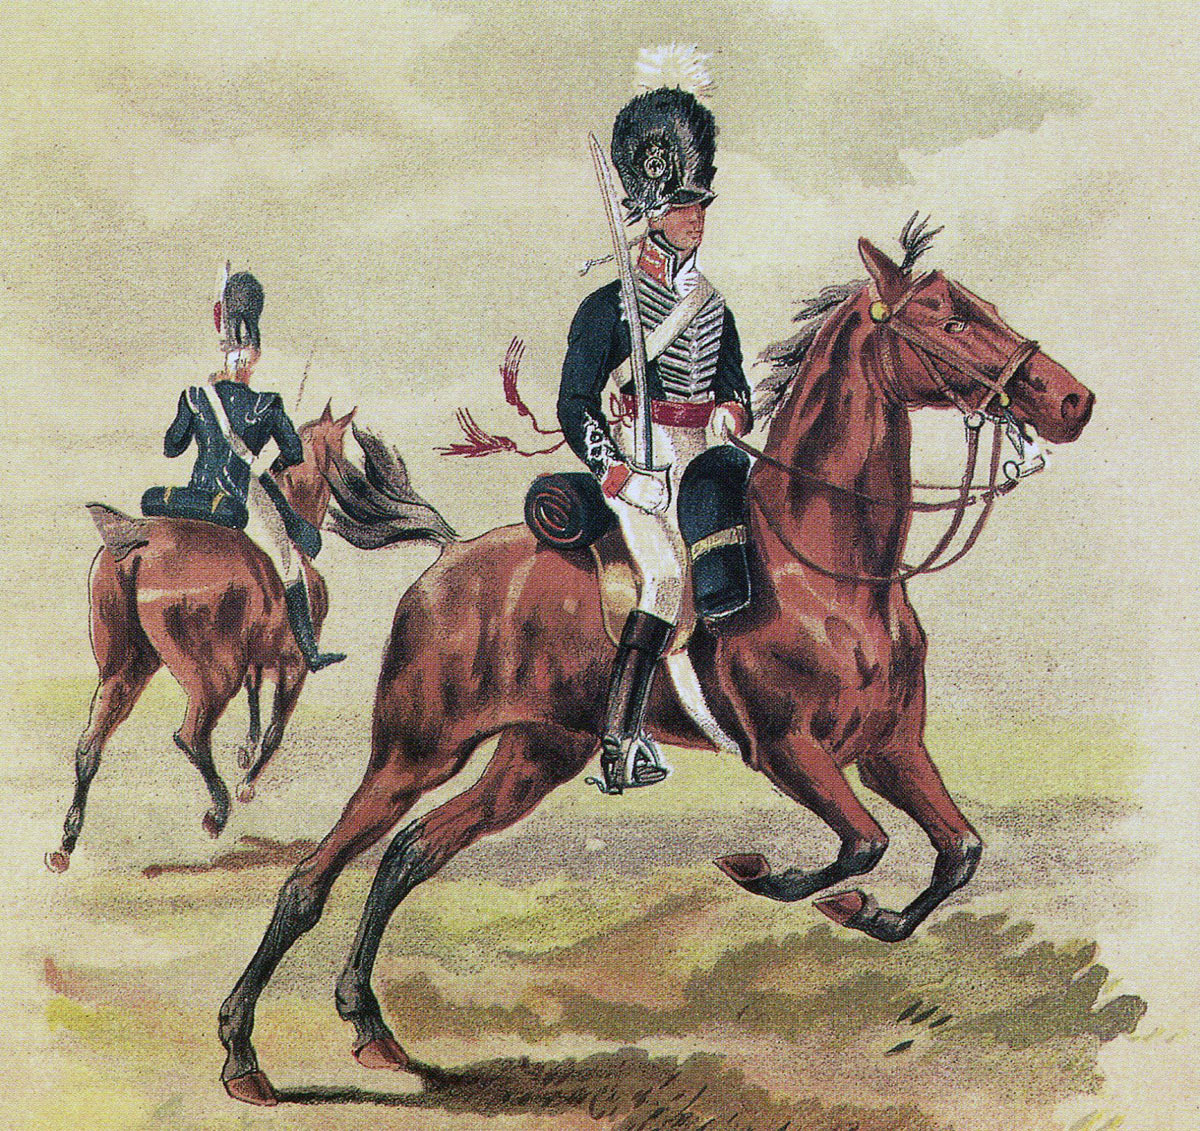 Officers of the 14th Light Dragoons: Battle of the Crossing of the Douro on 16th May 1809 in the Peninsular War